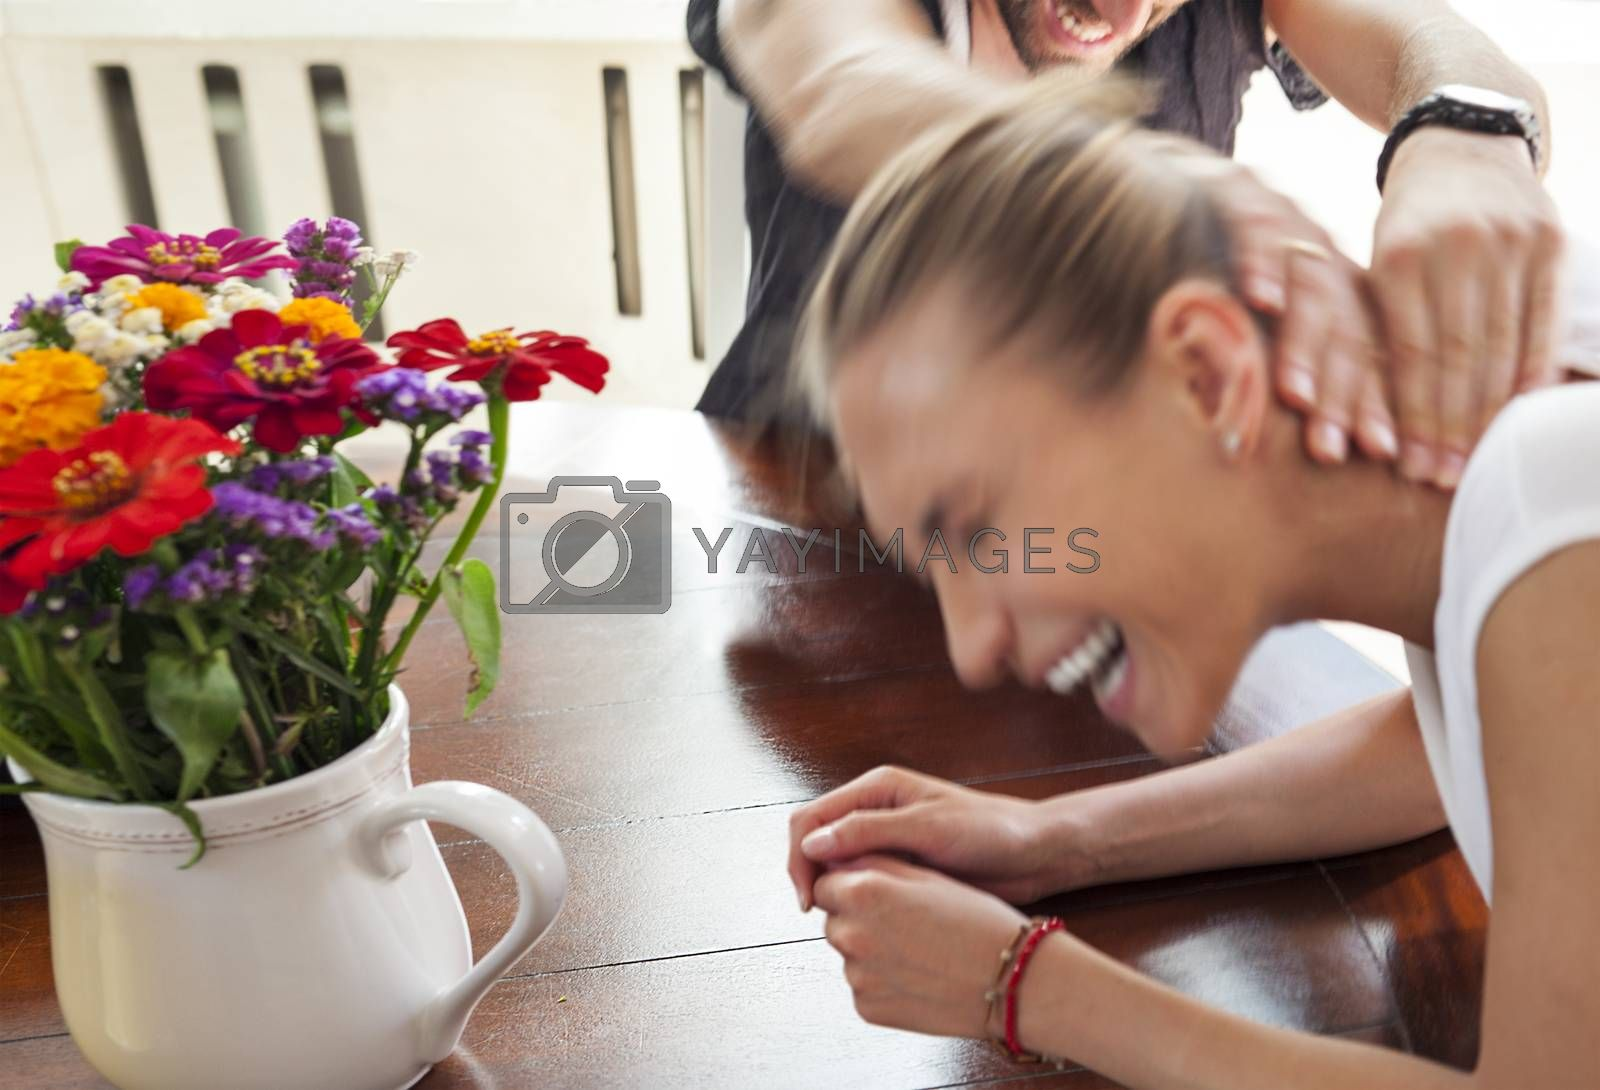 Motion blurred figures of playful young couple indoors. The man is squeezing the woman s neck. Female is laughing.